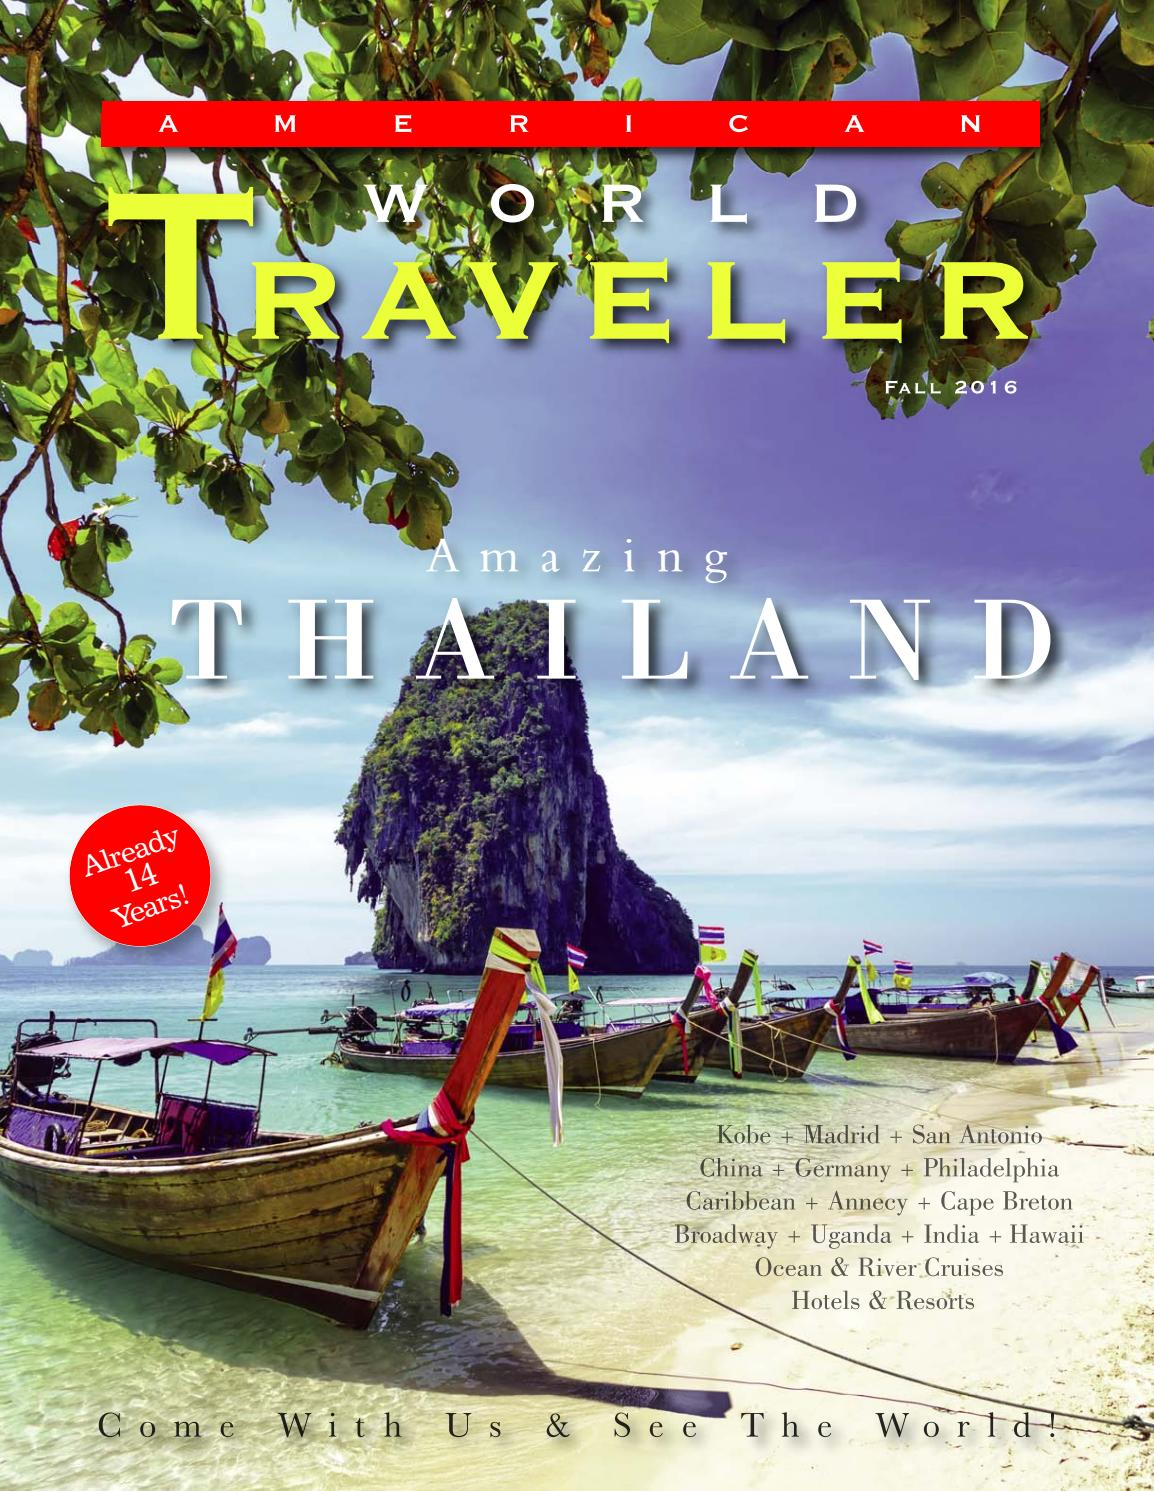 American World Traveler Fall 2016 issue by www